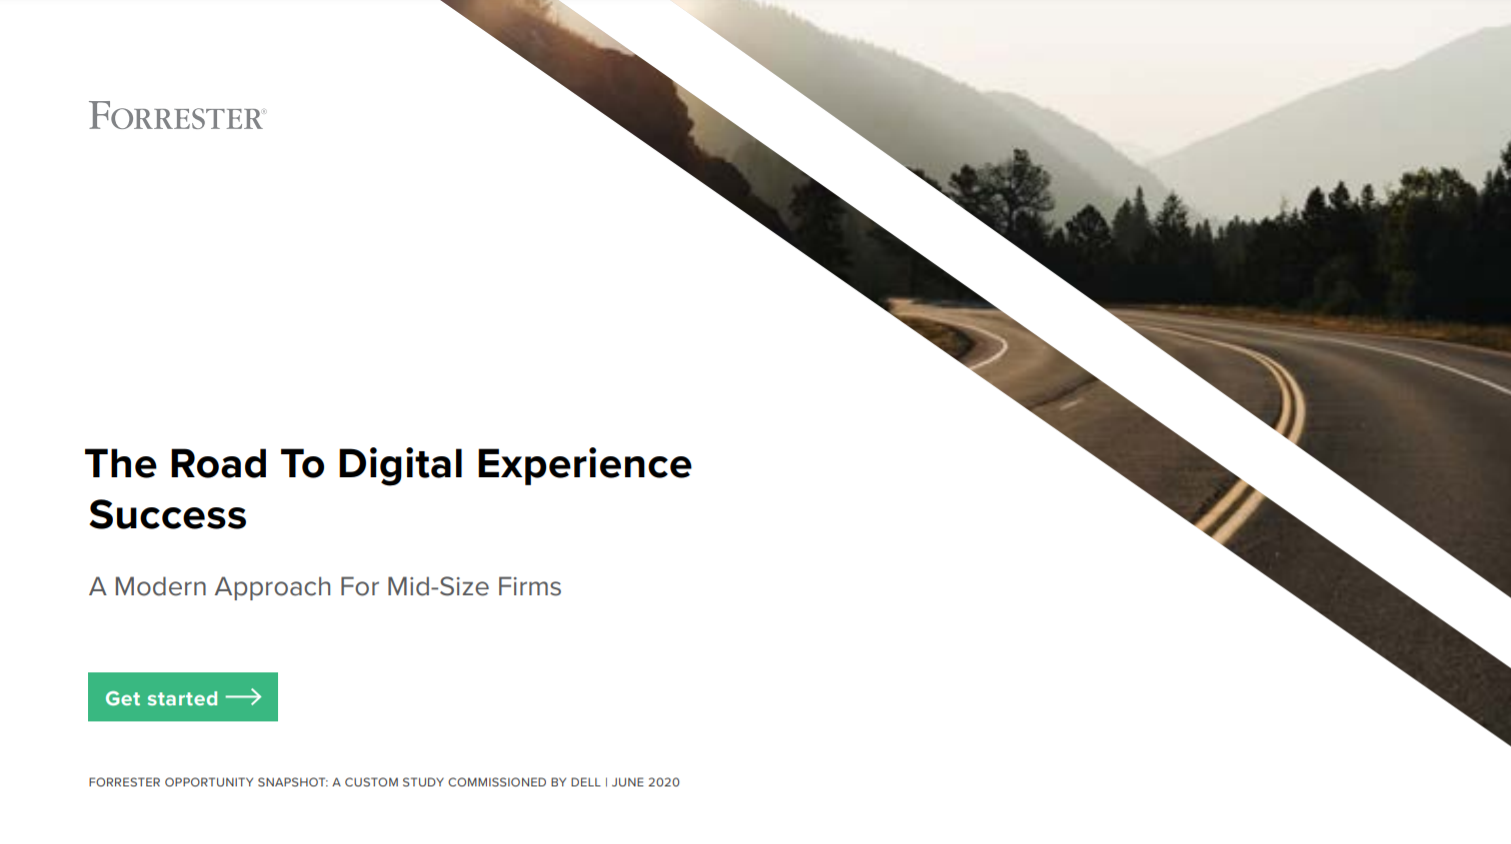 FORRESTER: THE ROAD TO DIGITAL EXPERIENCE SUCCESS - A MODERN APPROACH FOR MID-SIZE FIRMS (SG).pdf